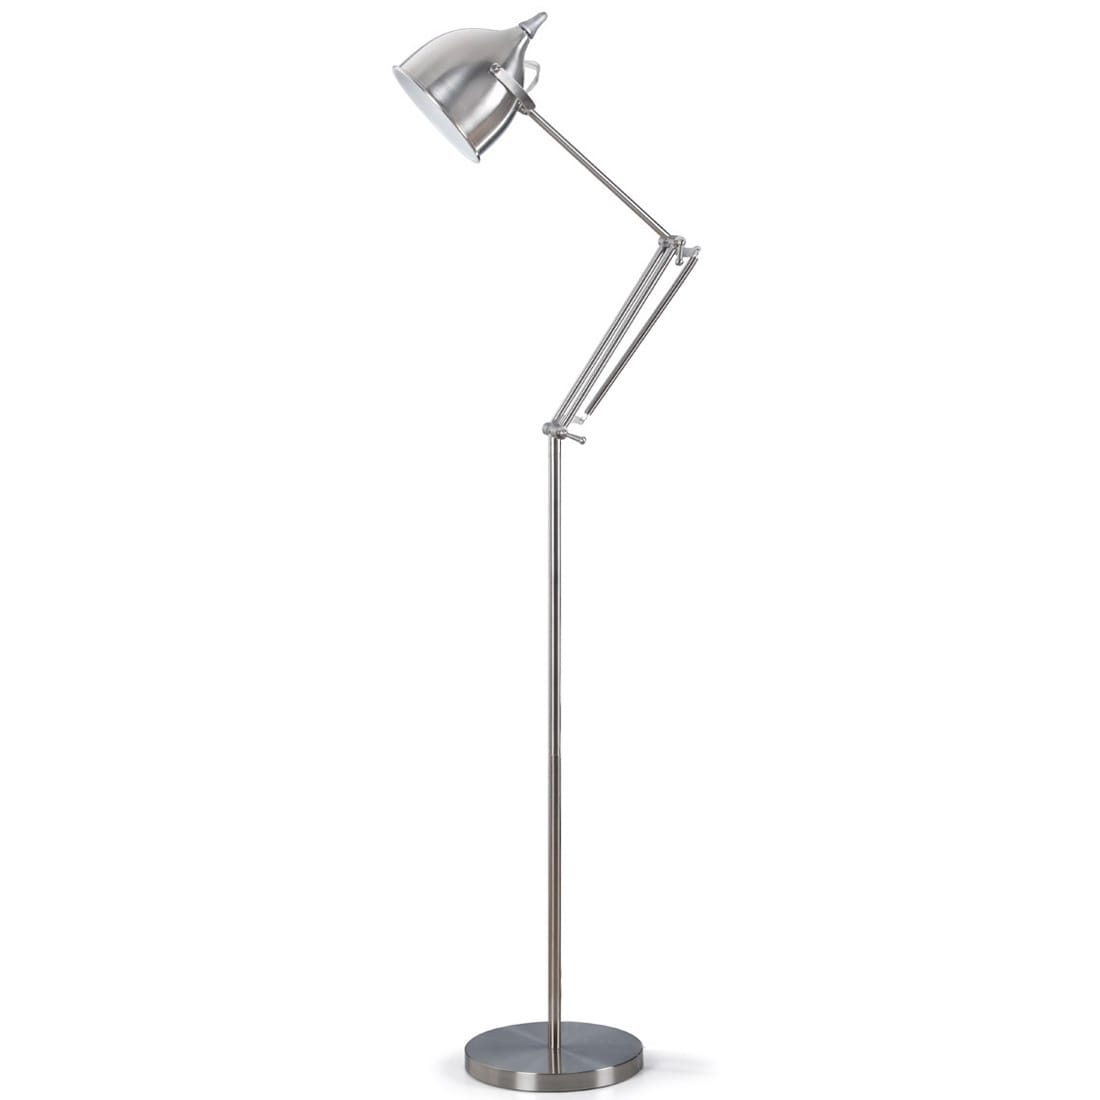 Steel Metal Floor Lamp With Adjustable Swing Arm And Heavy Sturdy Base